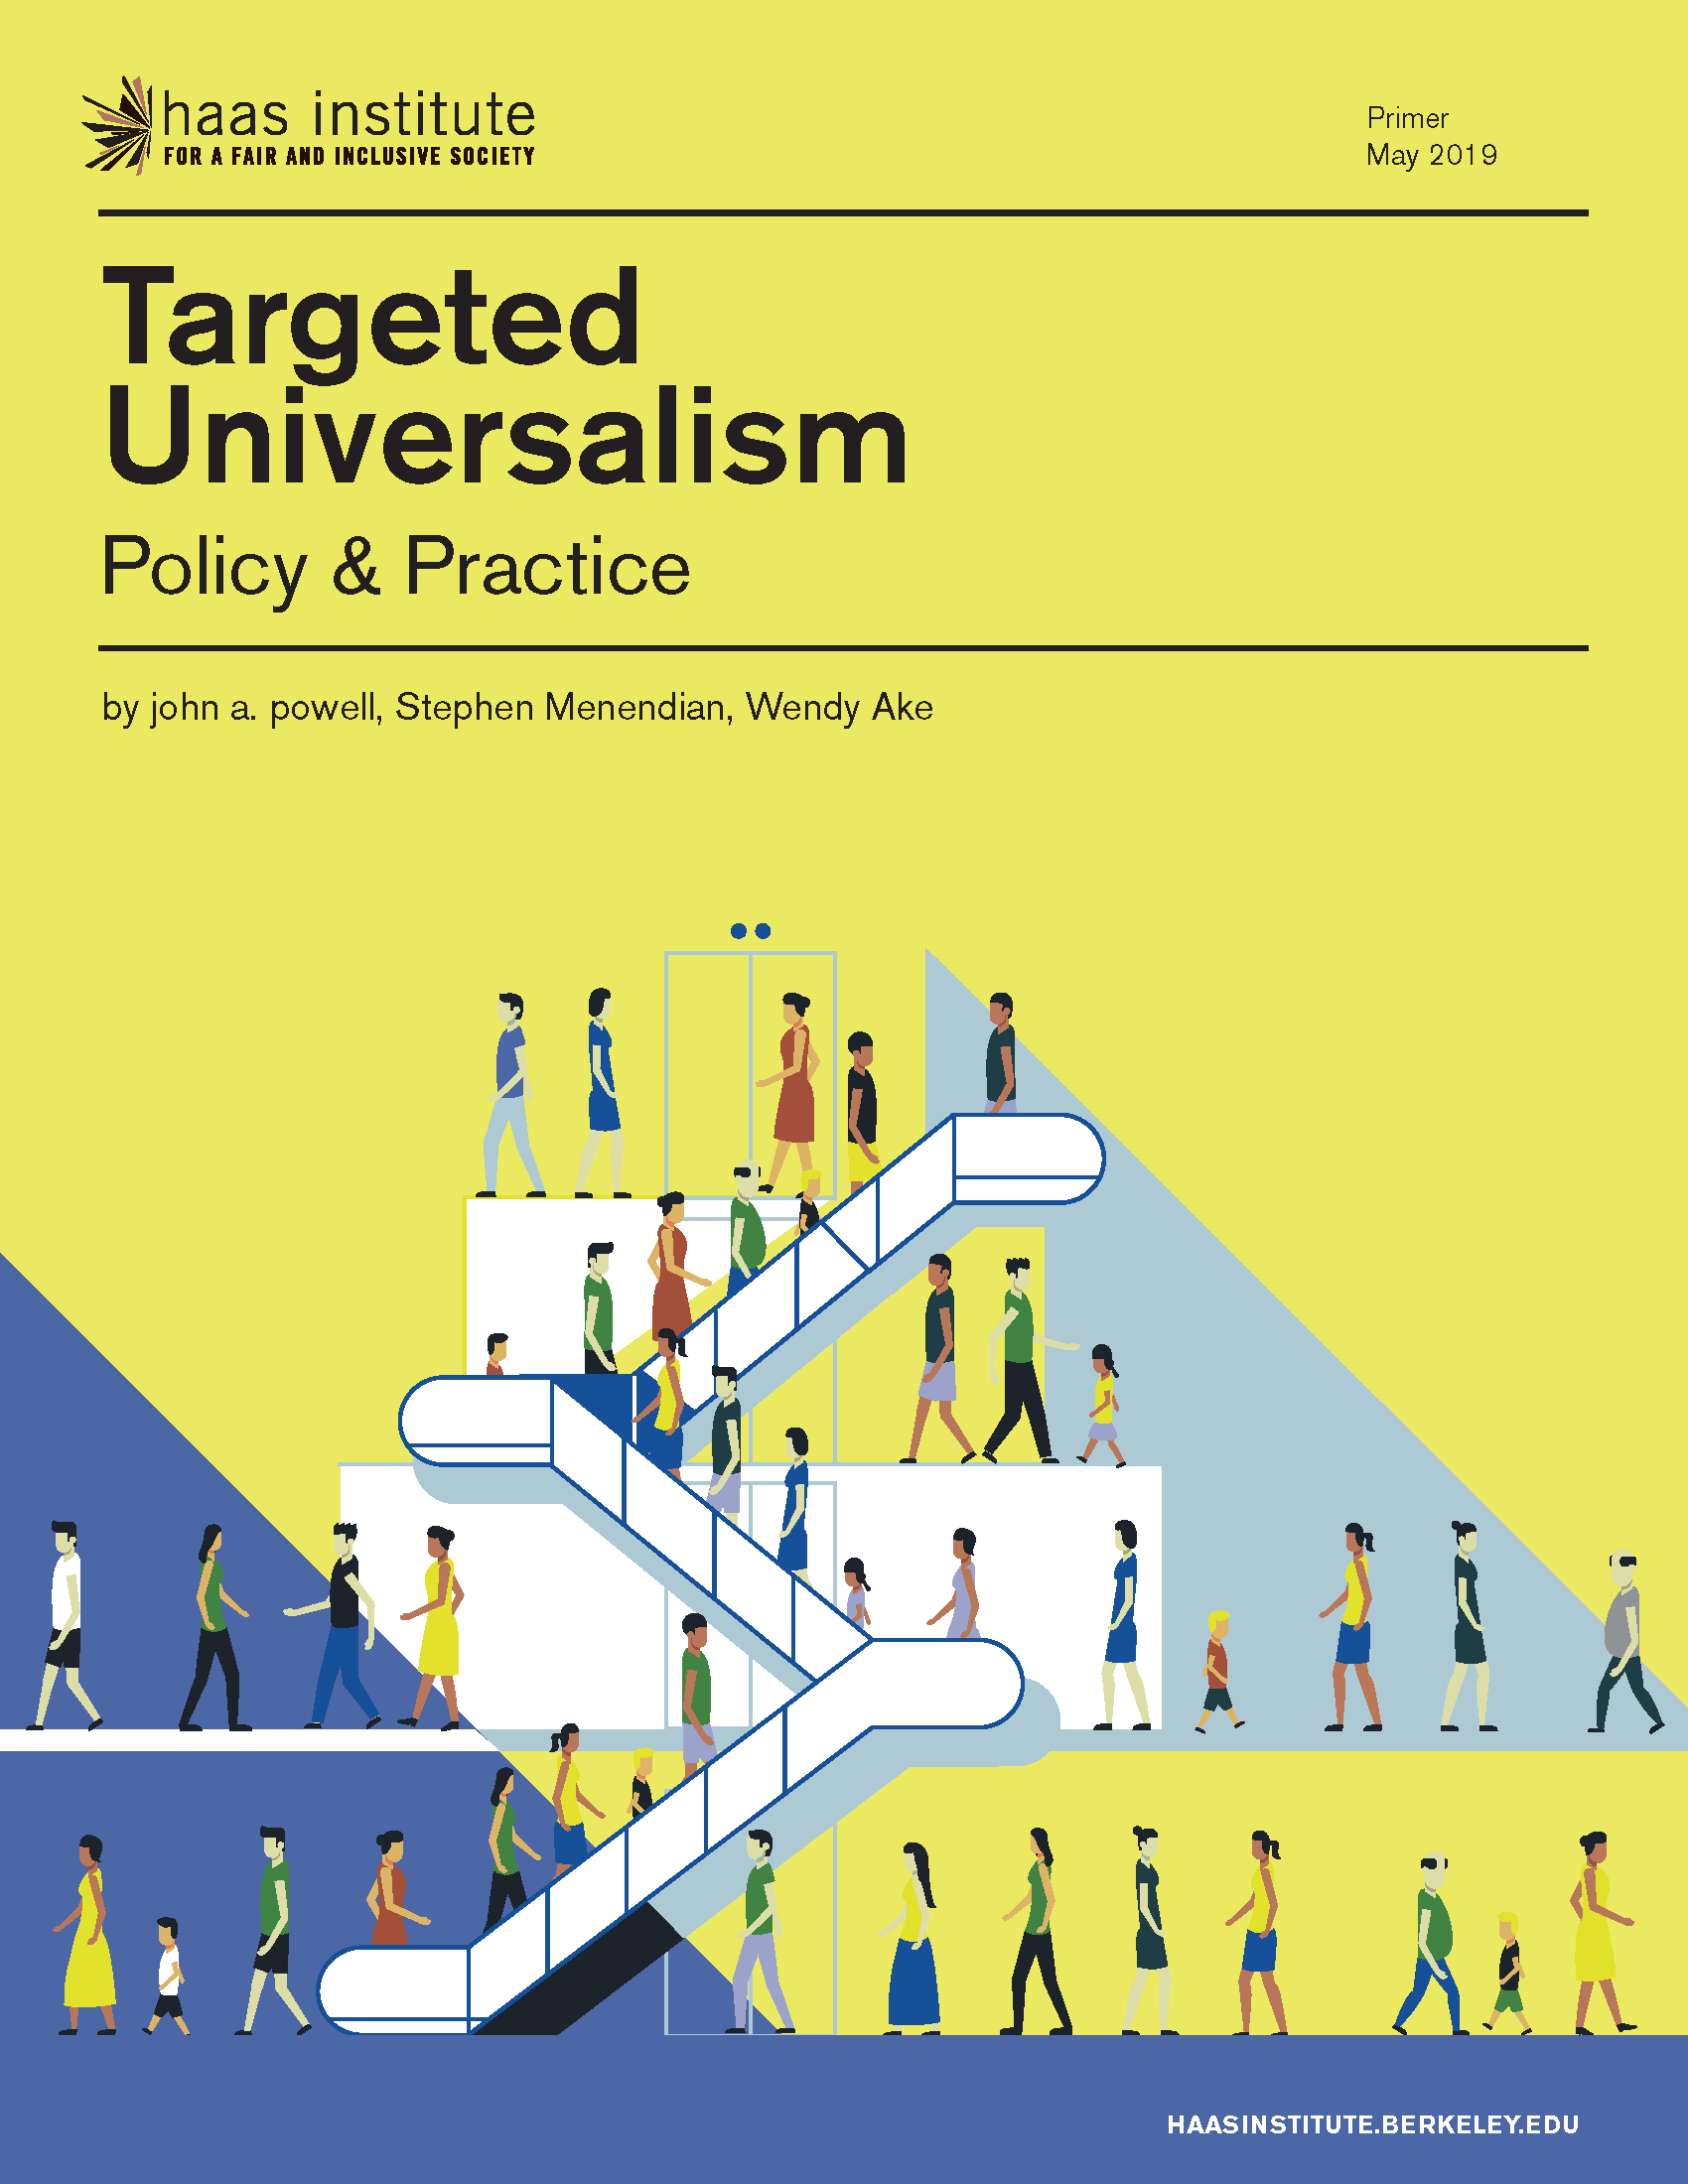 Cover of the Targeted Universalism primer